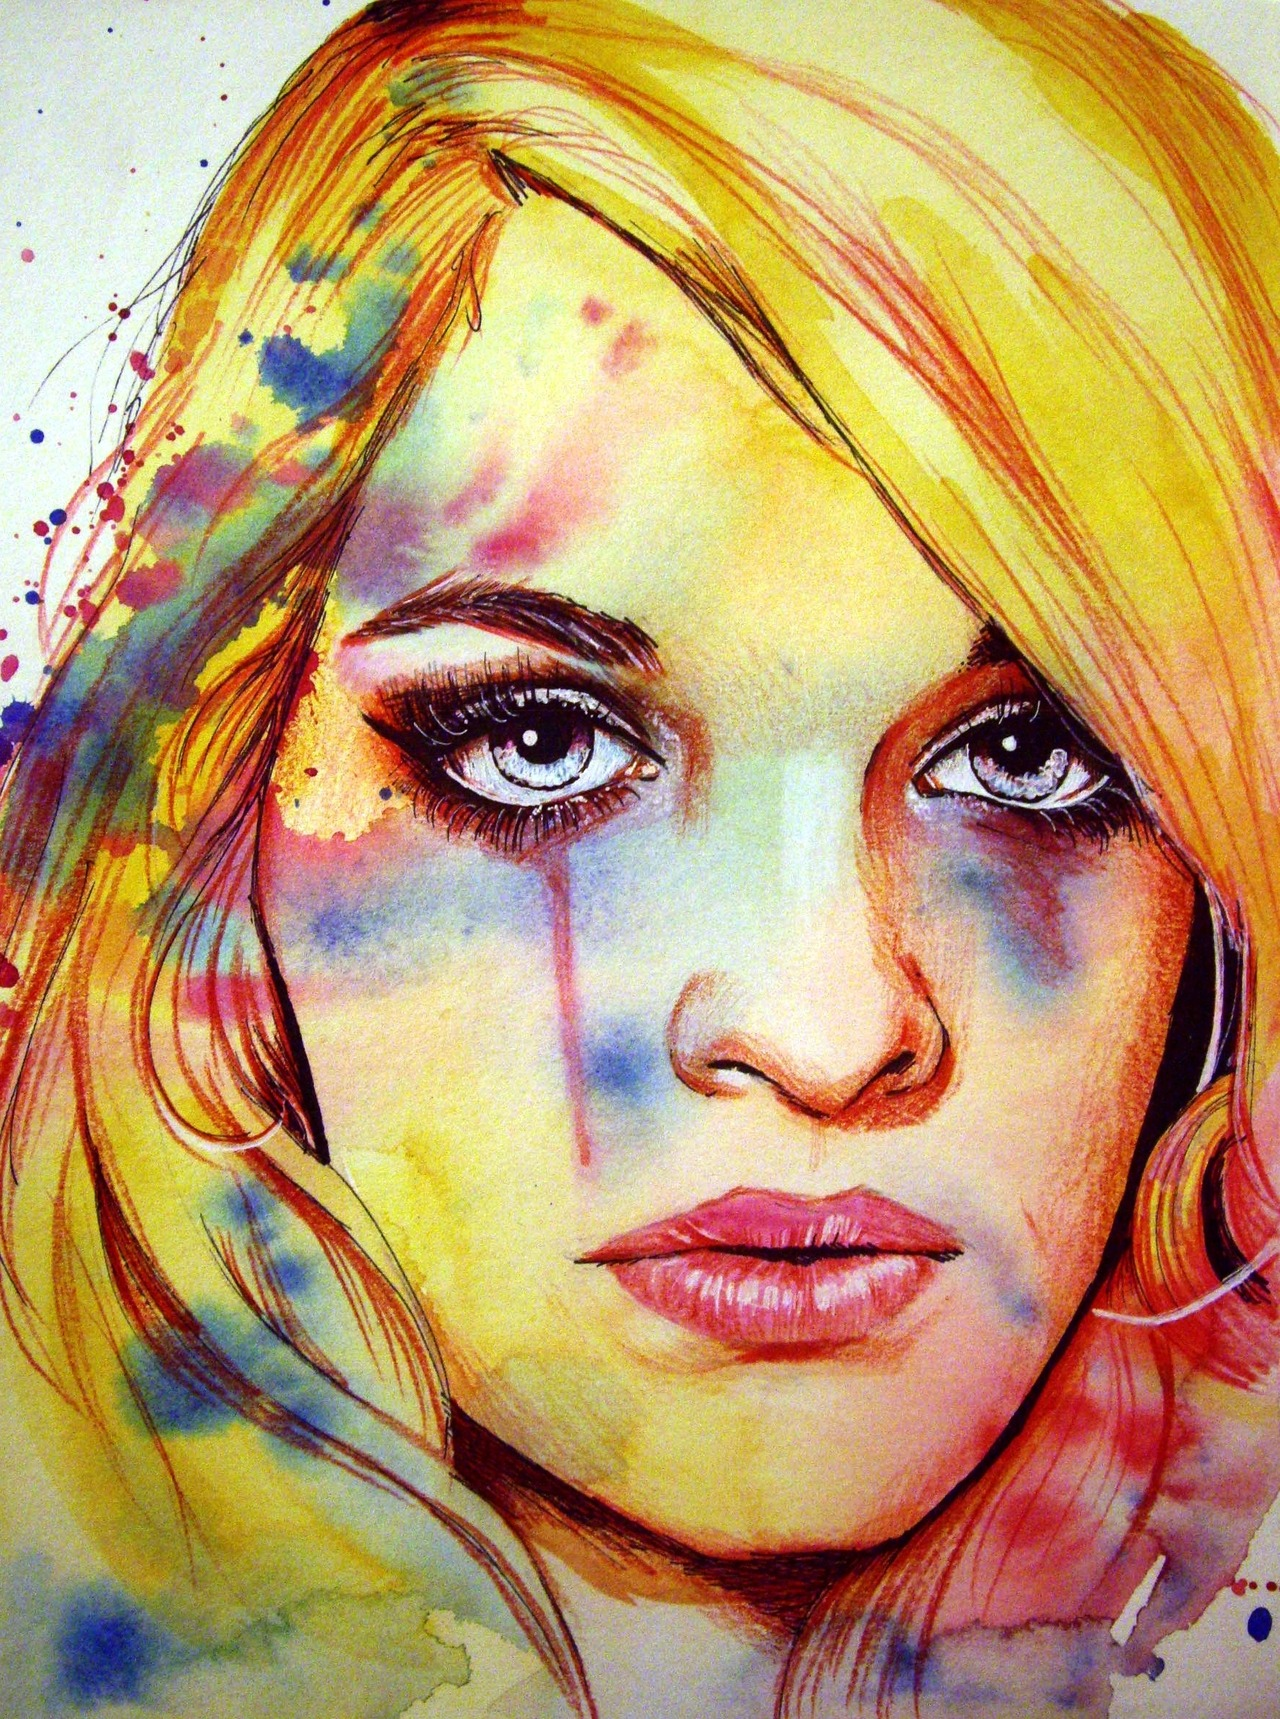 """Jemma"" Watercolor, acrylic, ink, charcoal and color pencil on Canson paper. 9x12 inches. Inspired by a photograph of Jemma Grace Morris from Daren SF Photoarts. SEE ME MAKE IT HERE: http://www.youtube.com/watch?v=jj8zB3XqPGQ&feature=player_embedded http://www.olganoes.com/ http://www.facebook.com/olganoes http://www.olganoes.tumblr.com/ http://www.twitter.com/olganoes8 See the model's Tumblr here: http://www.neonlolita.tumblr.com"